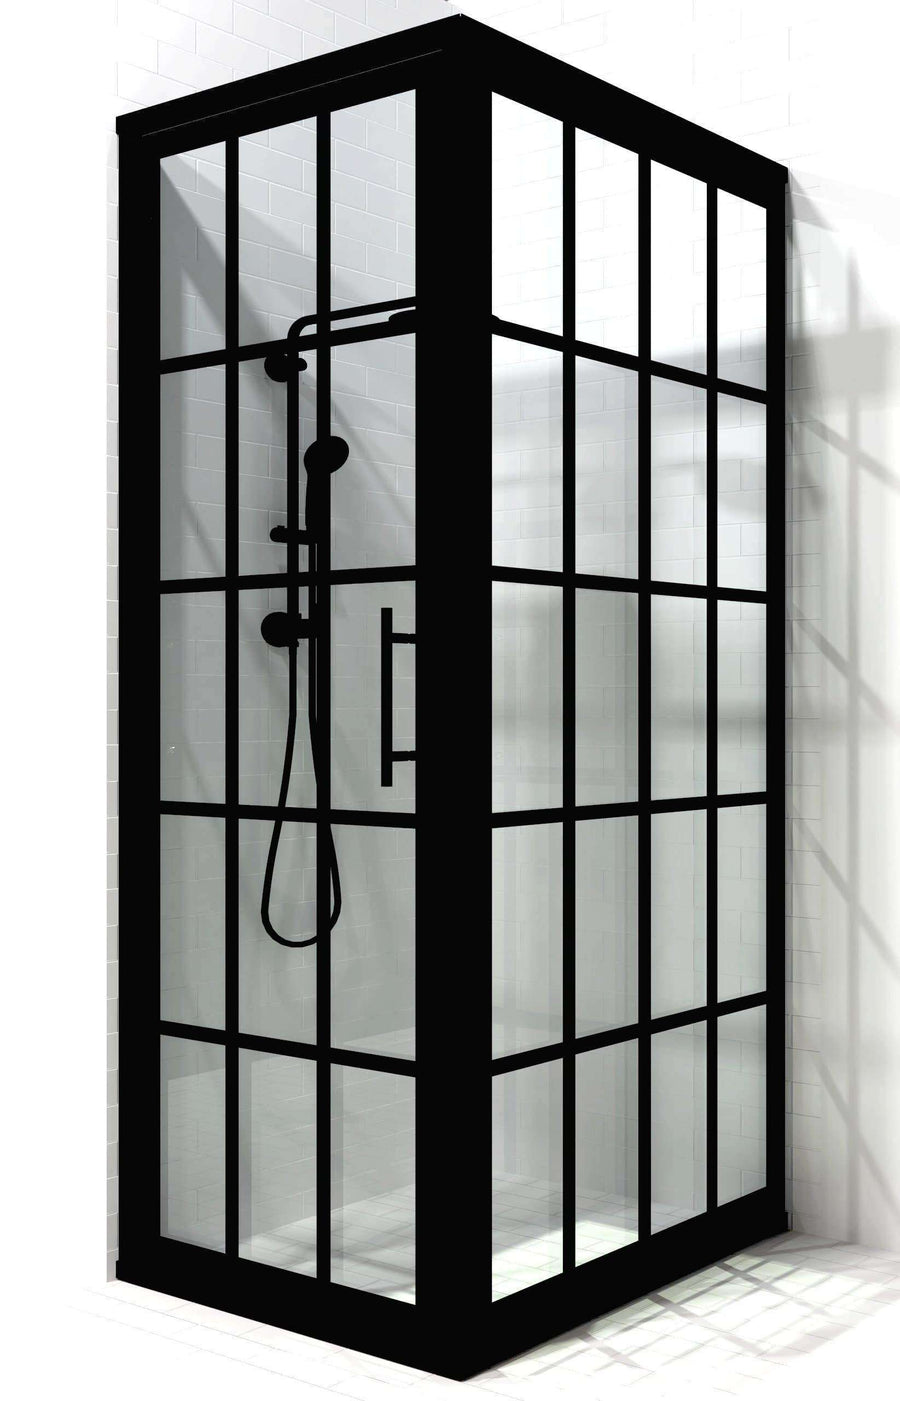 Industrial Black Grid Corner Shower Door 34 x 54 in.